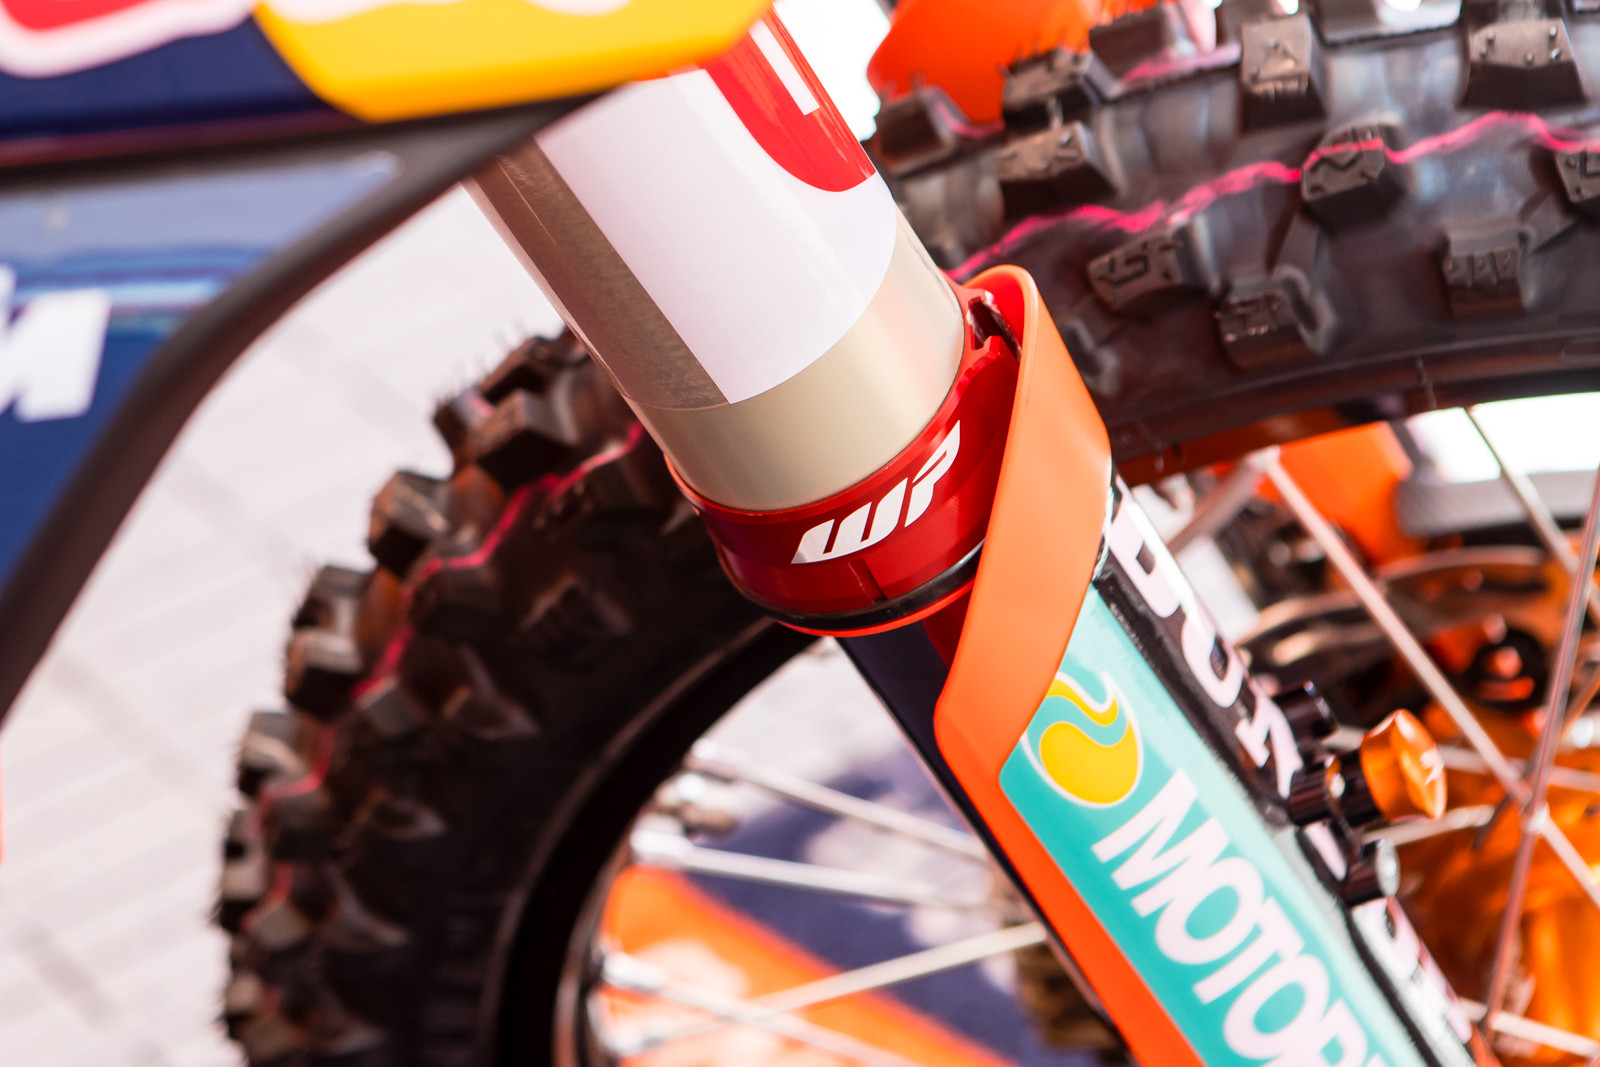 The Red Bull KTM team also integrated their holeshot hook into the WP seal casing on the fork tube.